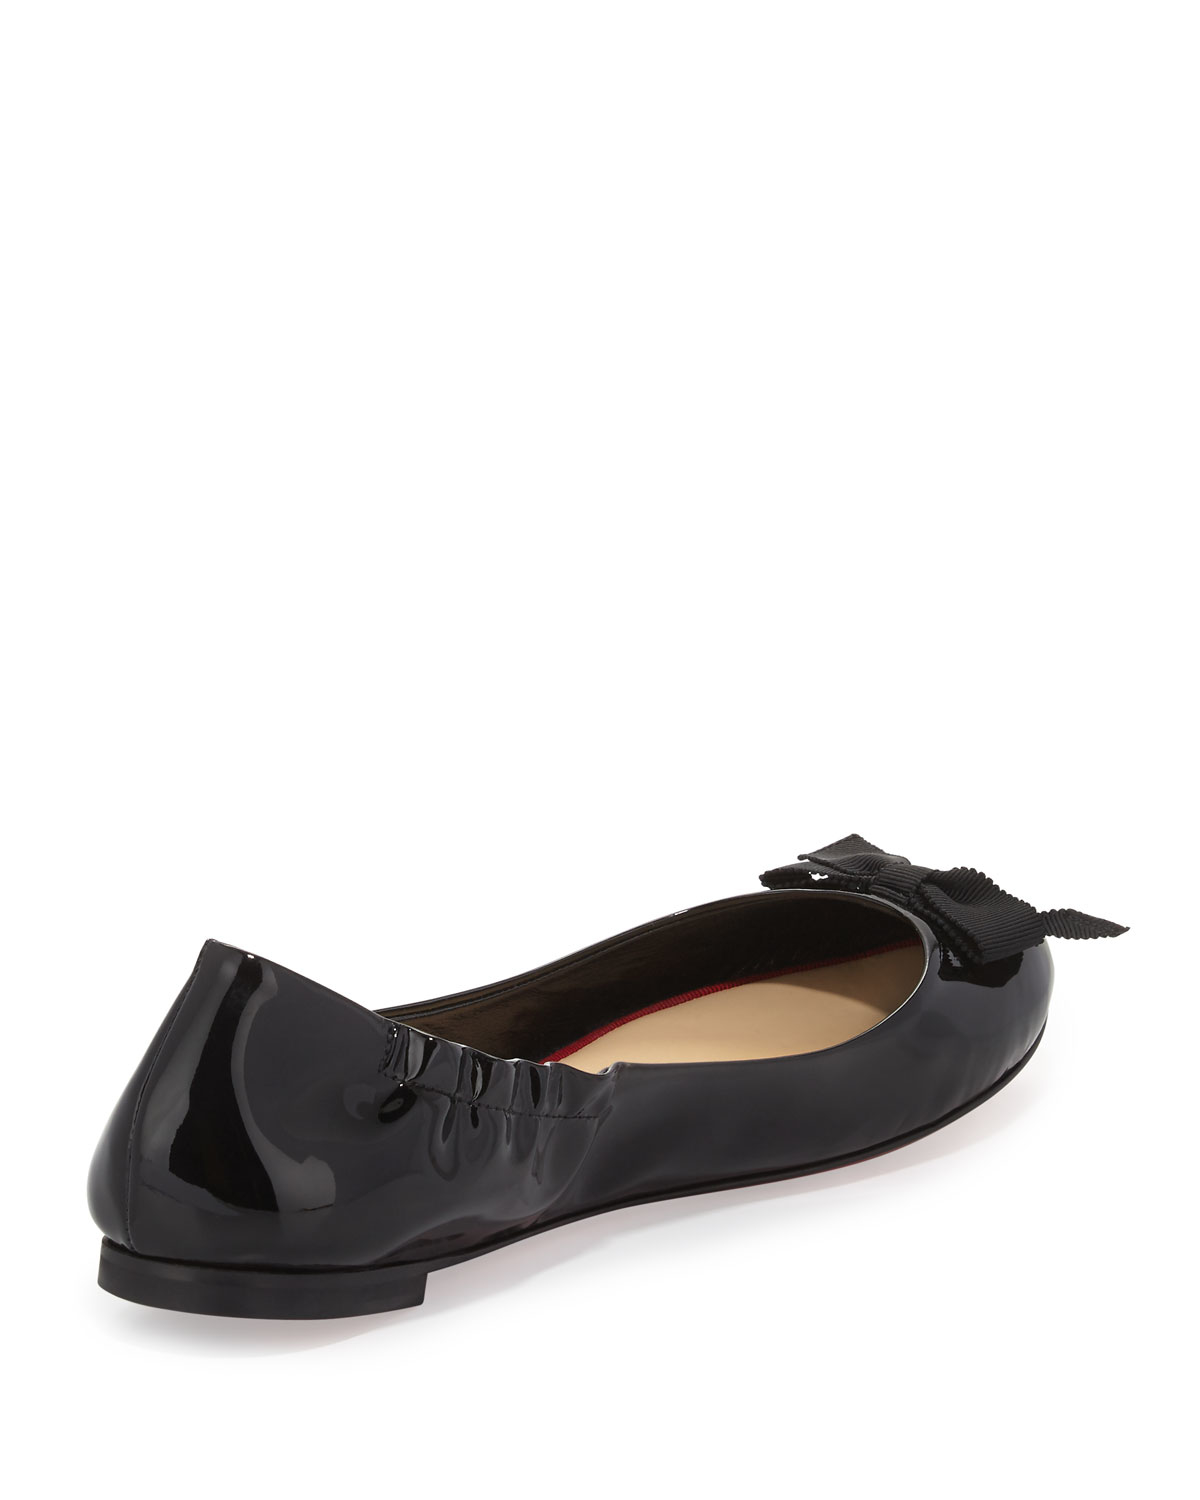 mens spiked loafers christian louboutin - christian louboutin espadrille flats Black leather bow details ...